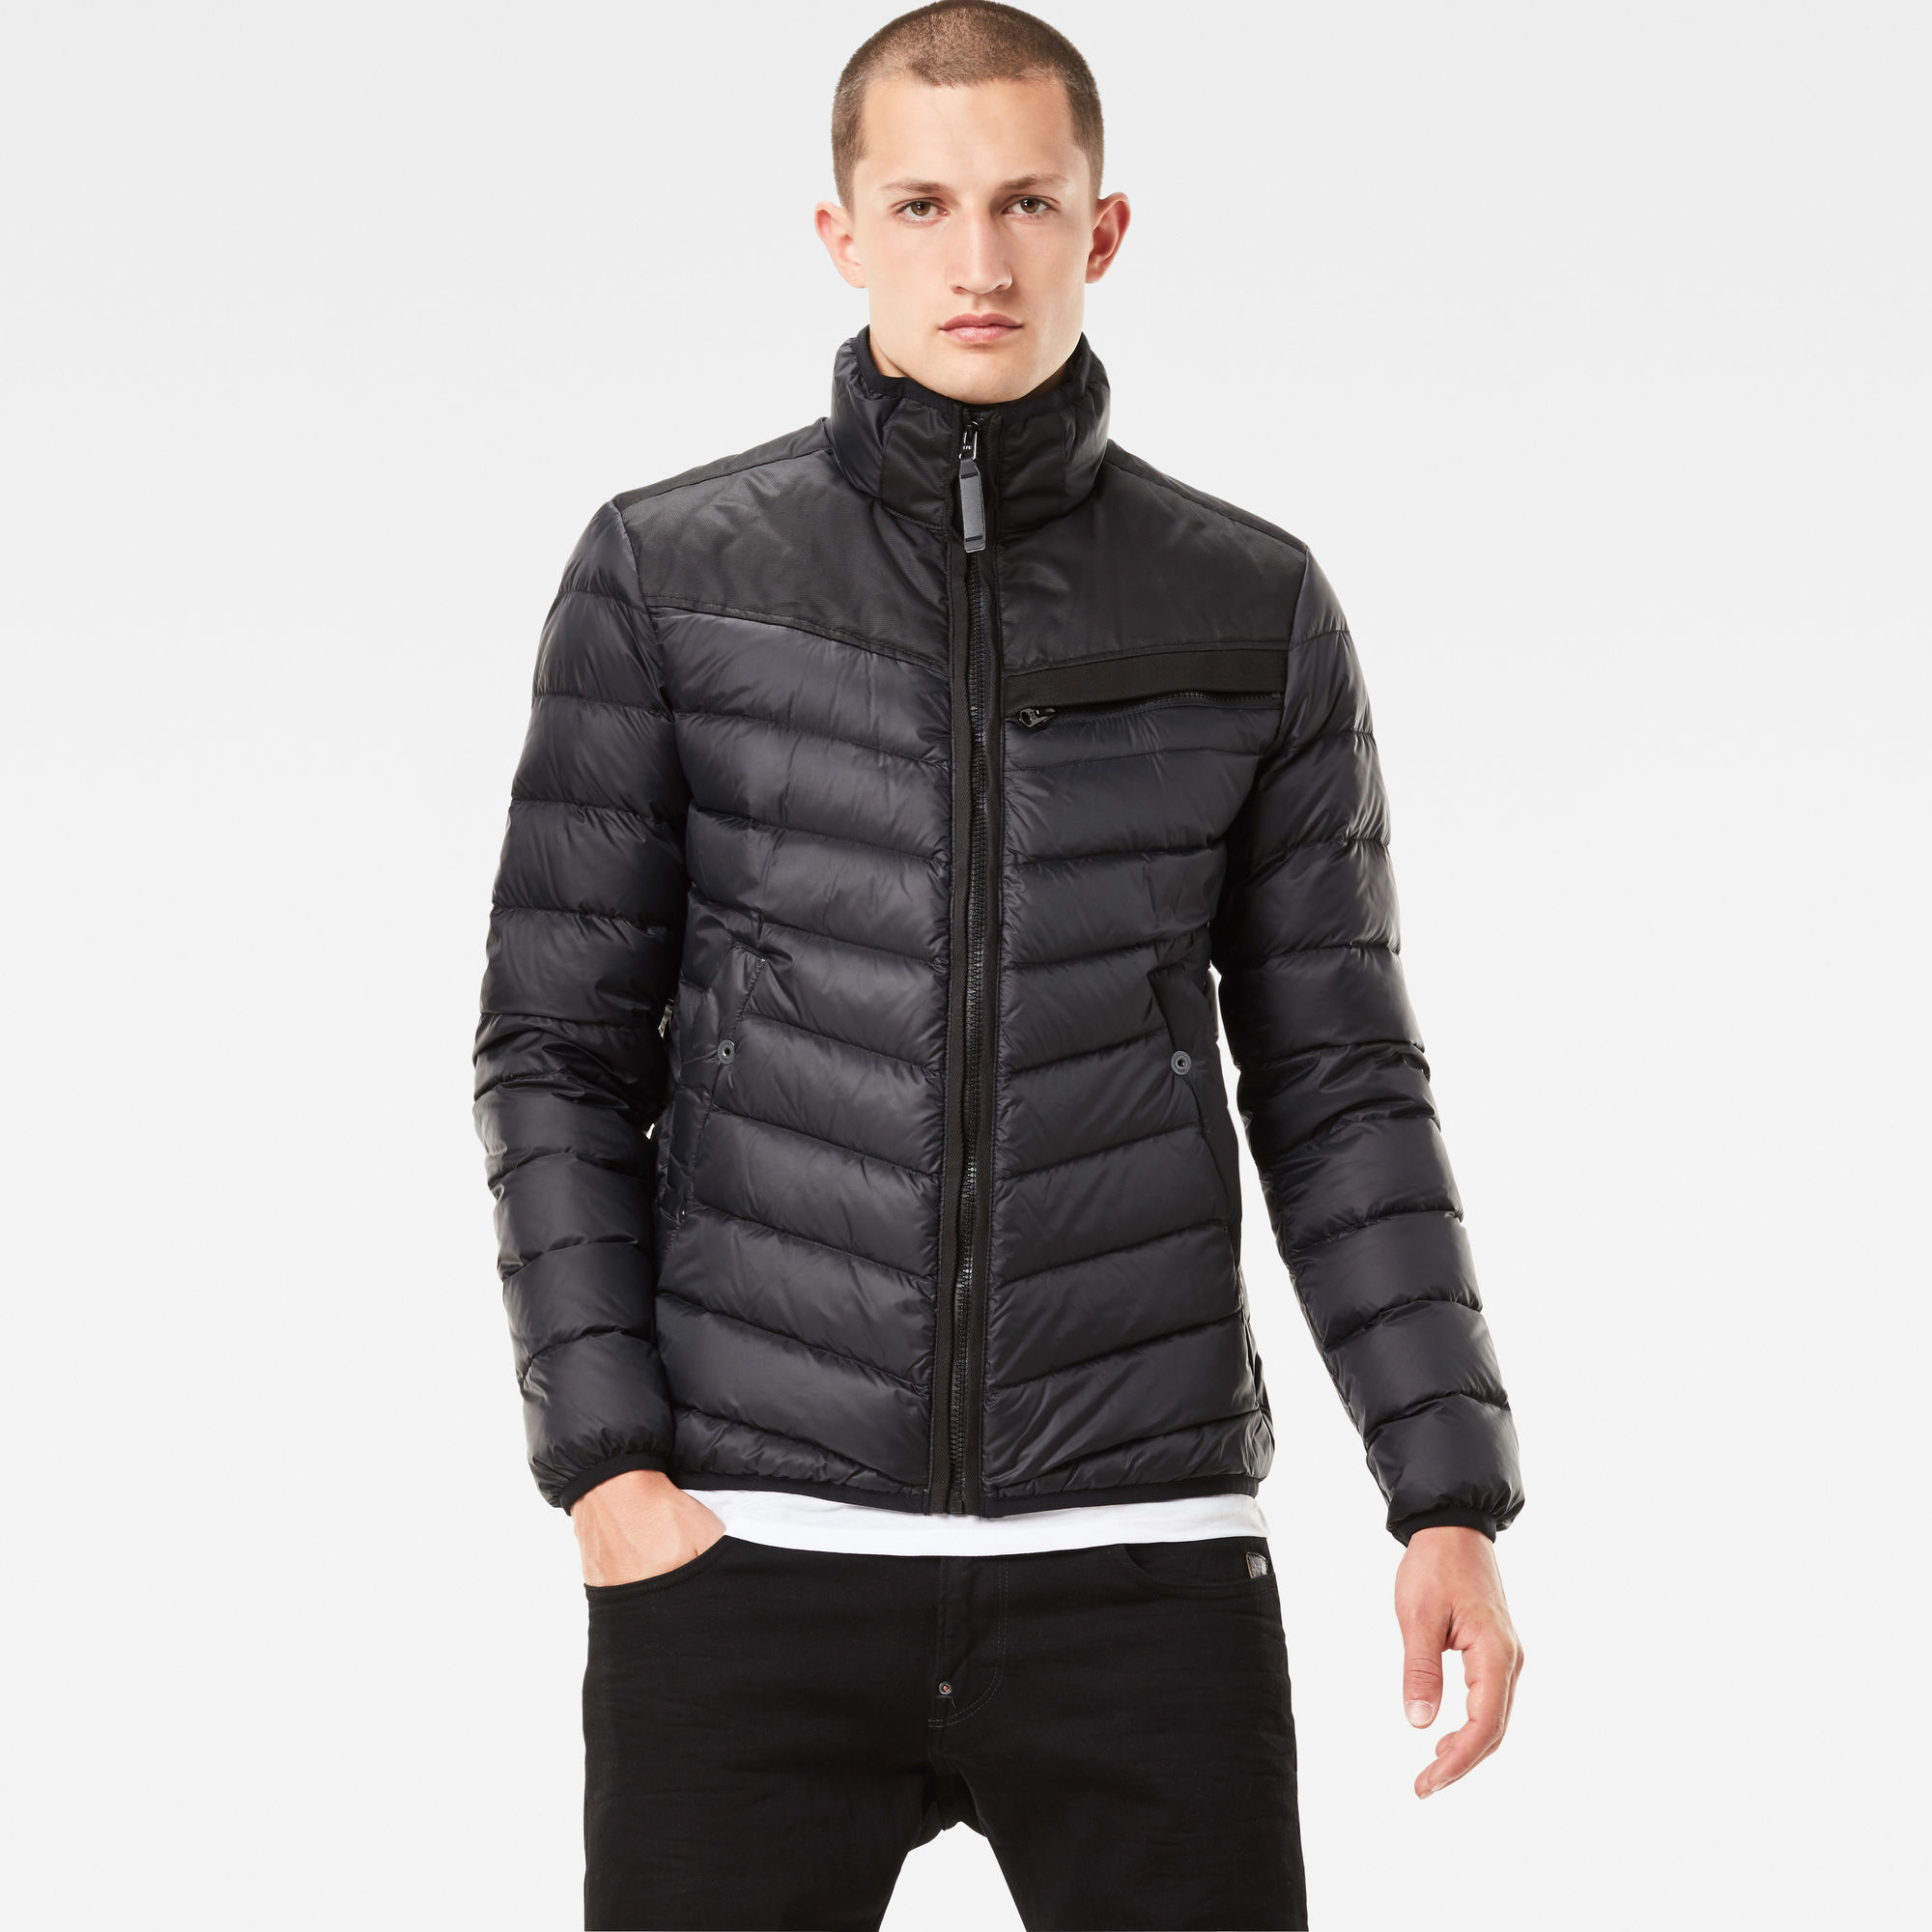 Attacc Down Jacket